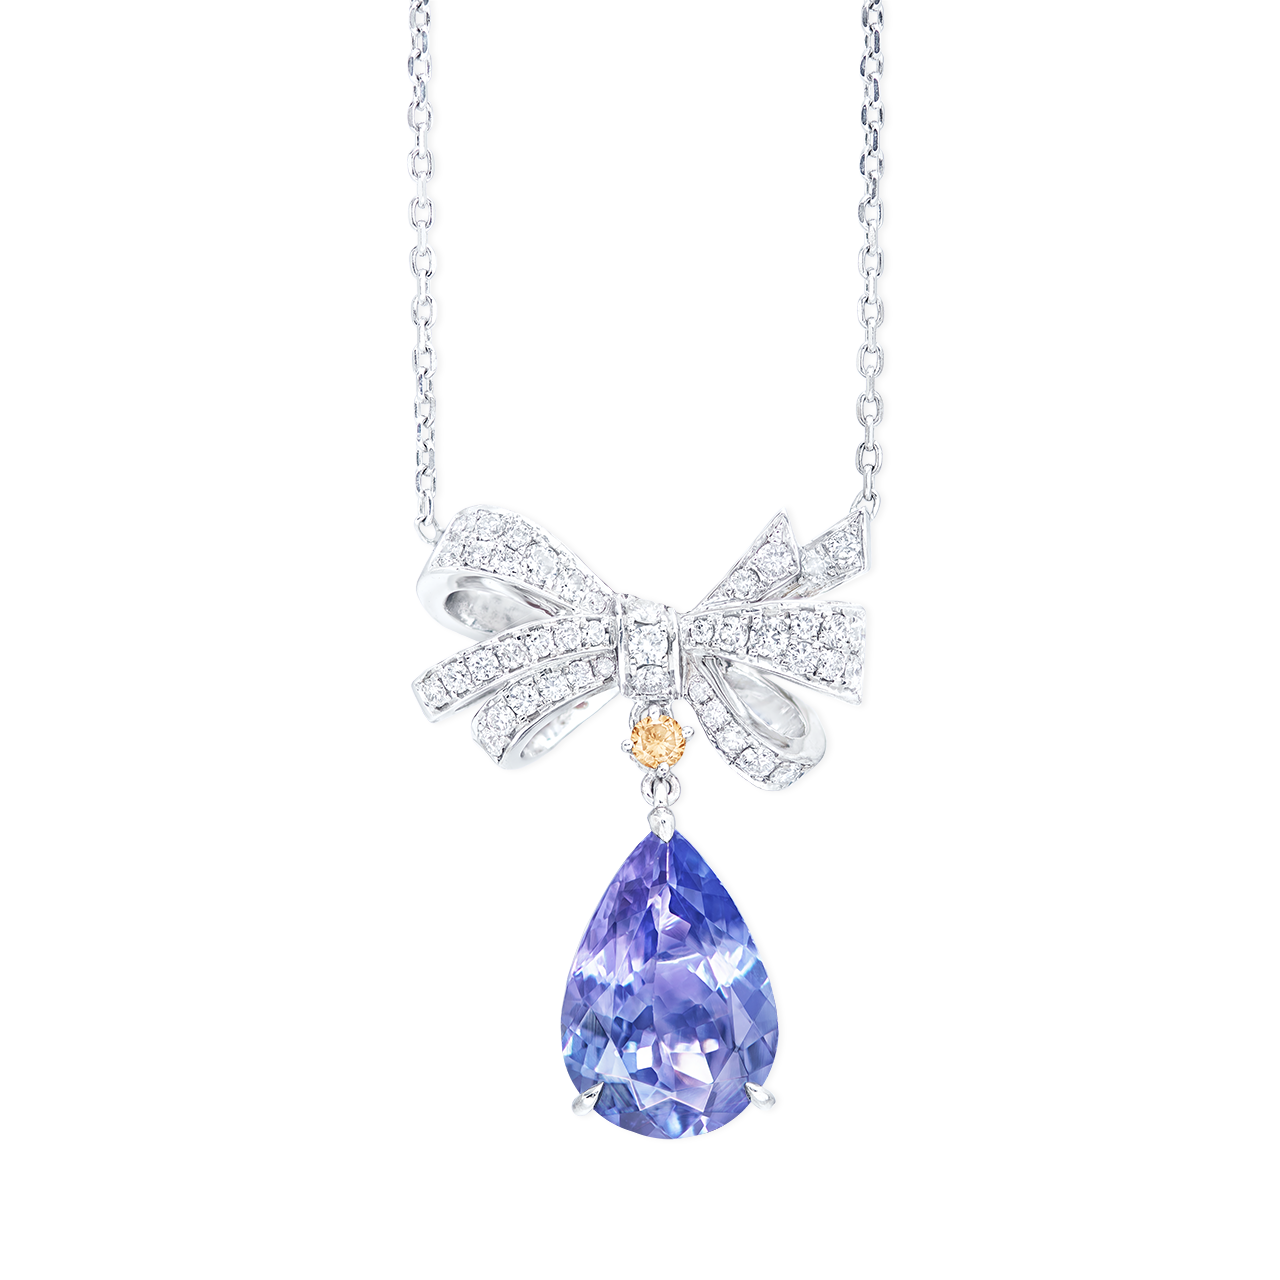 3.37克拉 丹泉石鑽石墜鍊